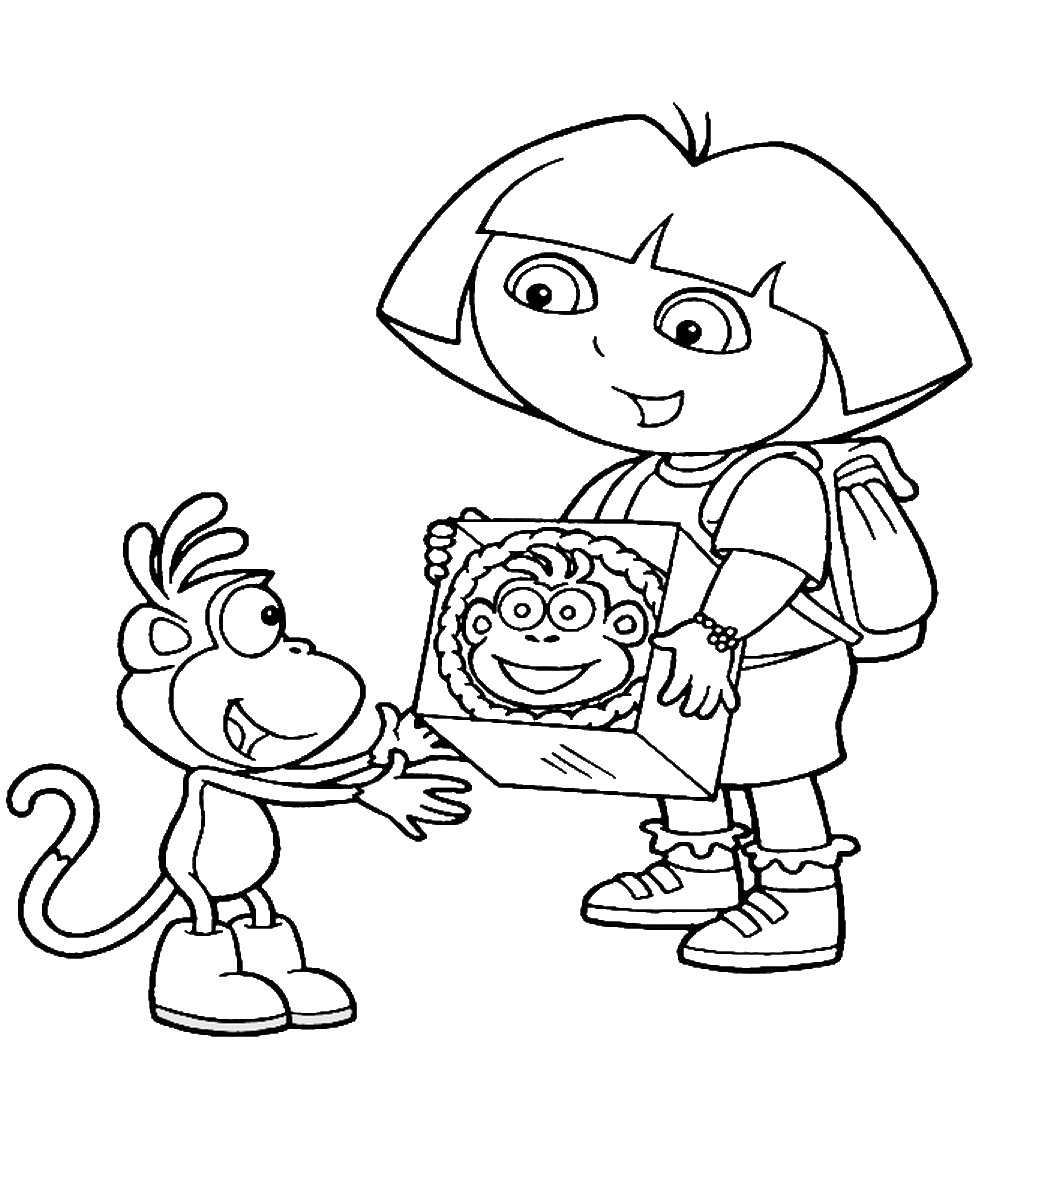 dora coloring page dora and boots coloring pages to download and print for free dora coloring page